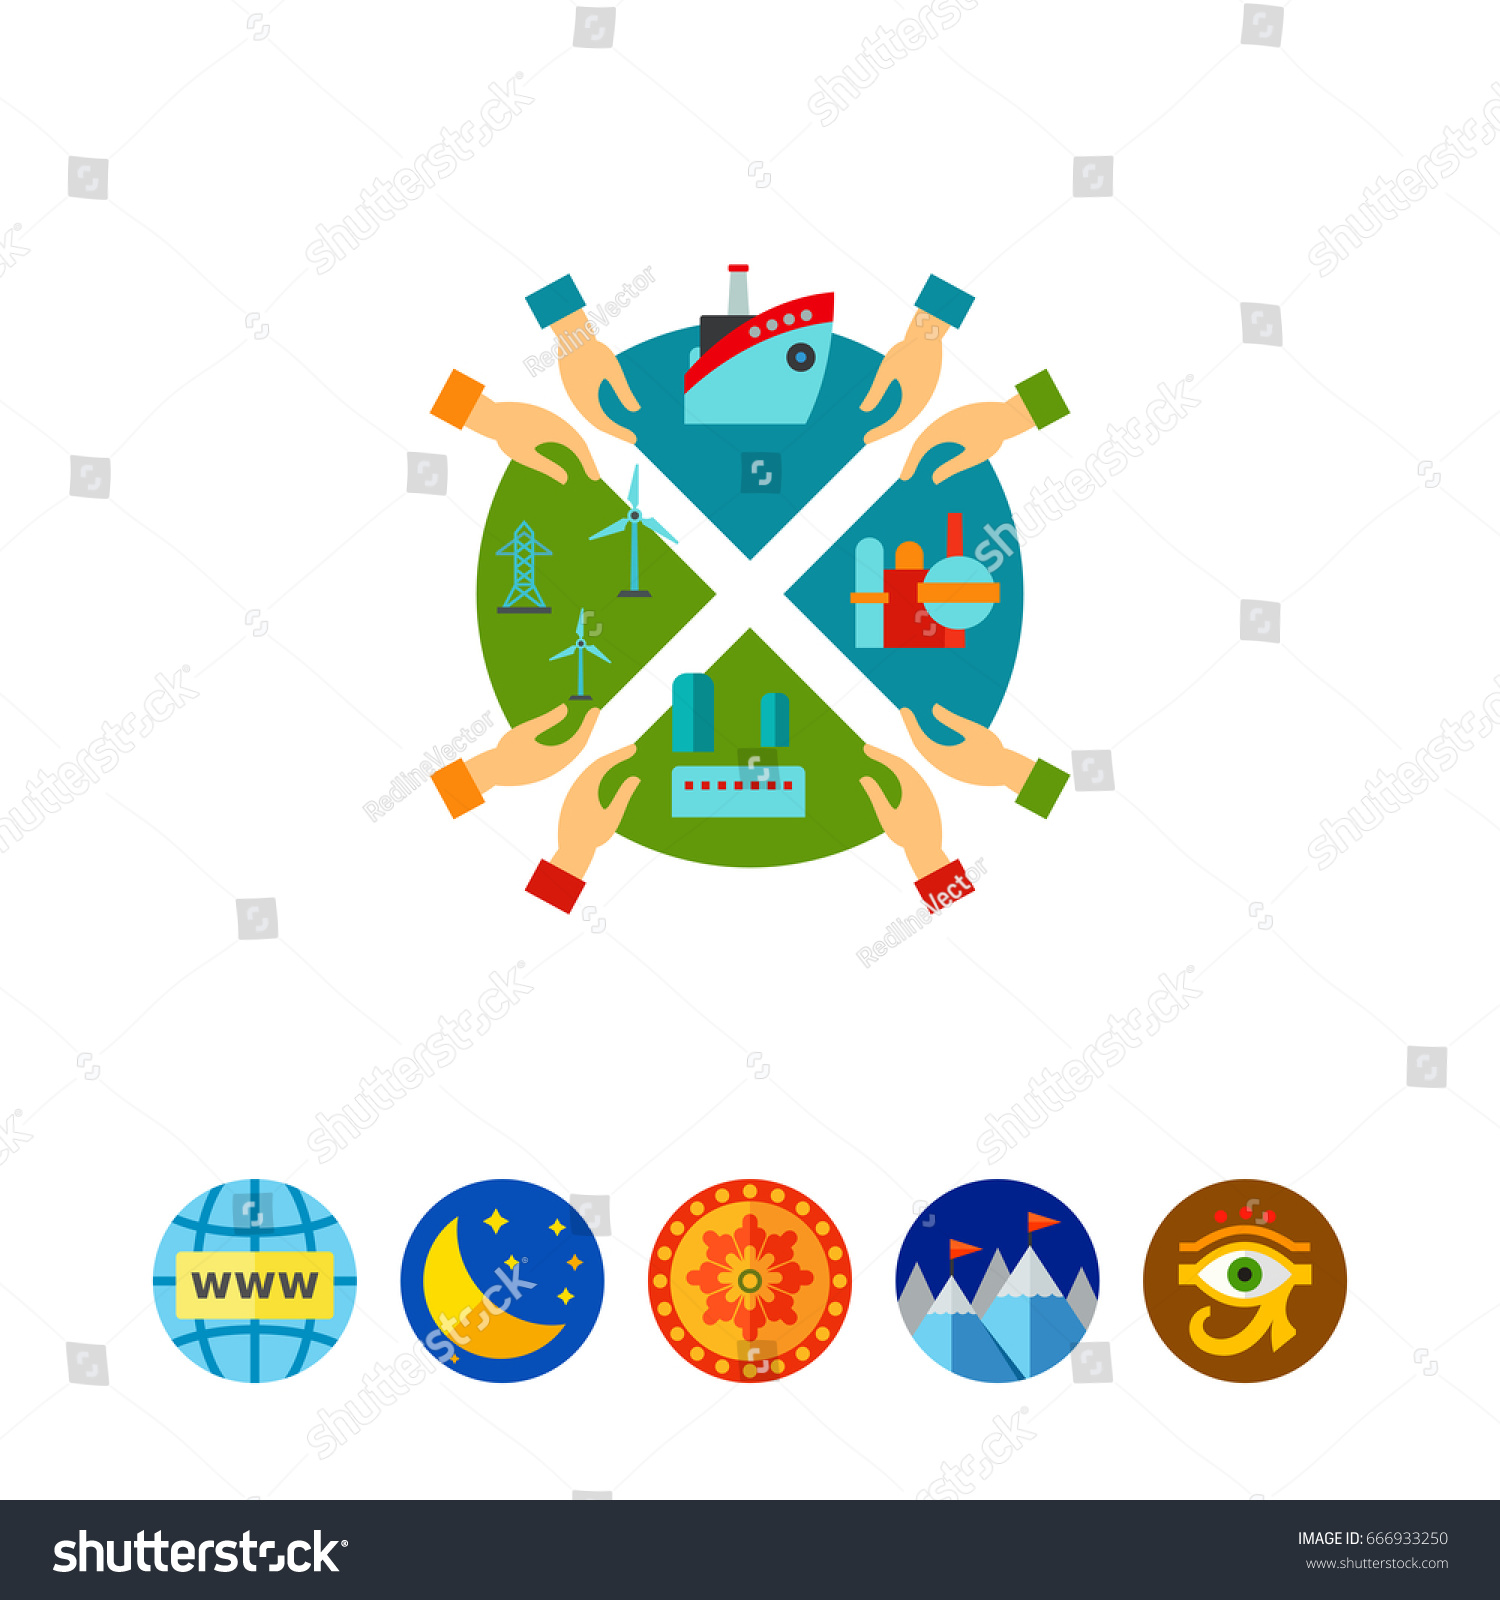 Oil industry investment pie chart icon stock vector 666933250 oil industry investment pie chart icon nvjuhfo Image collections